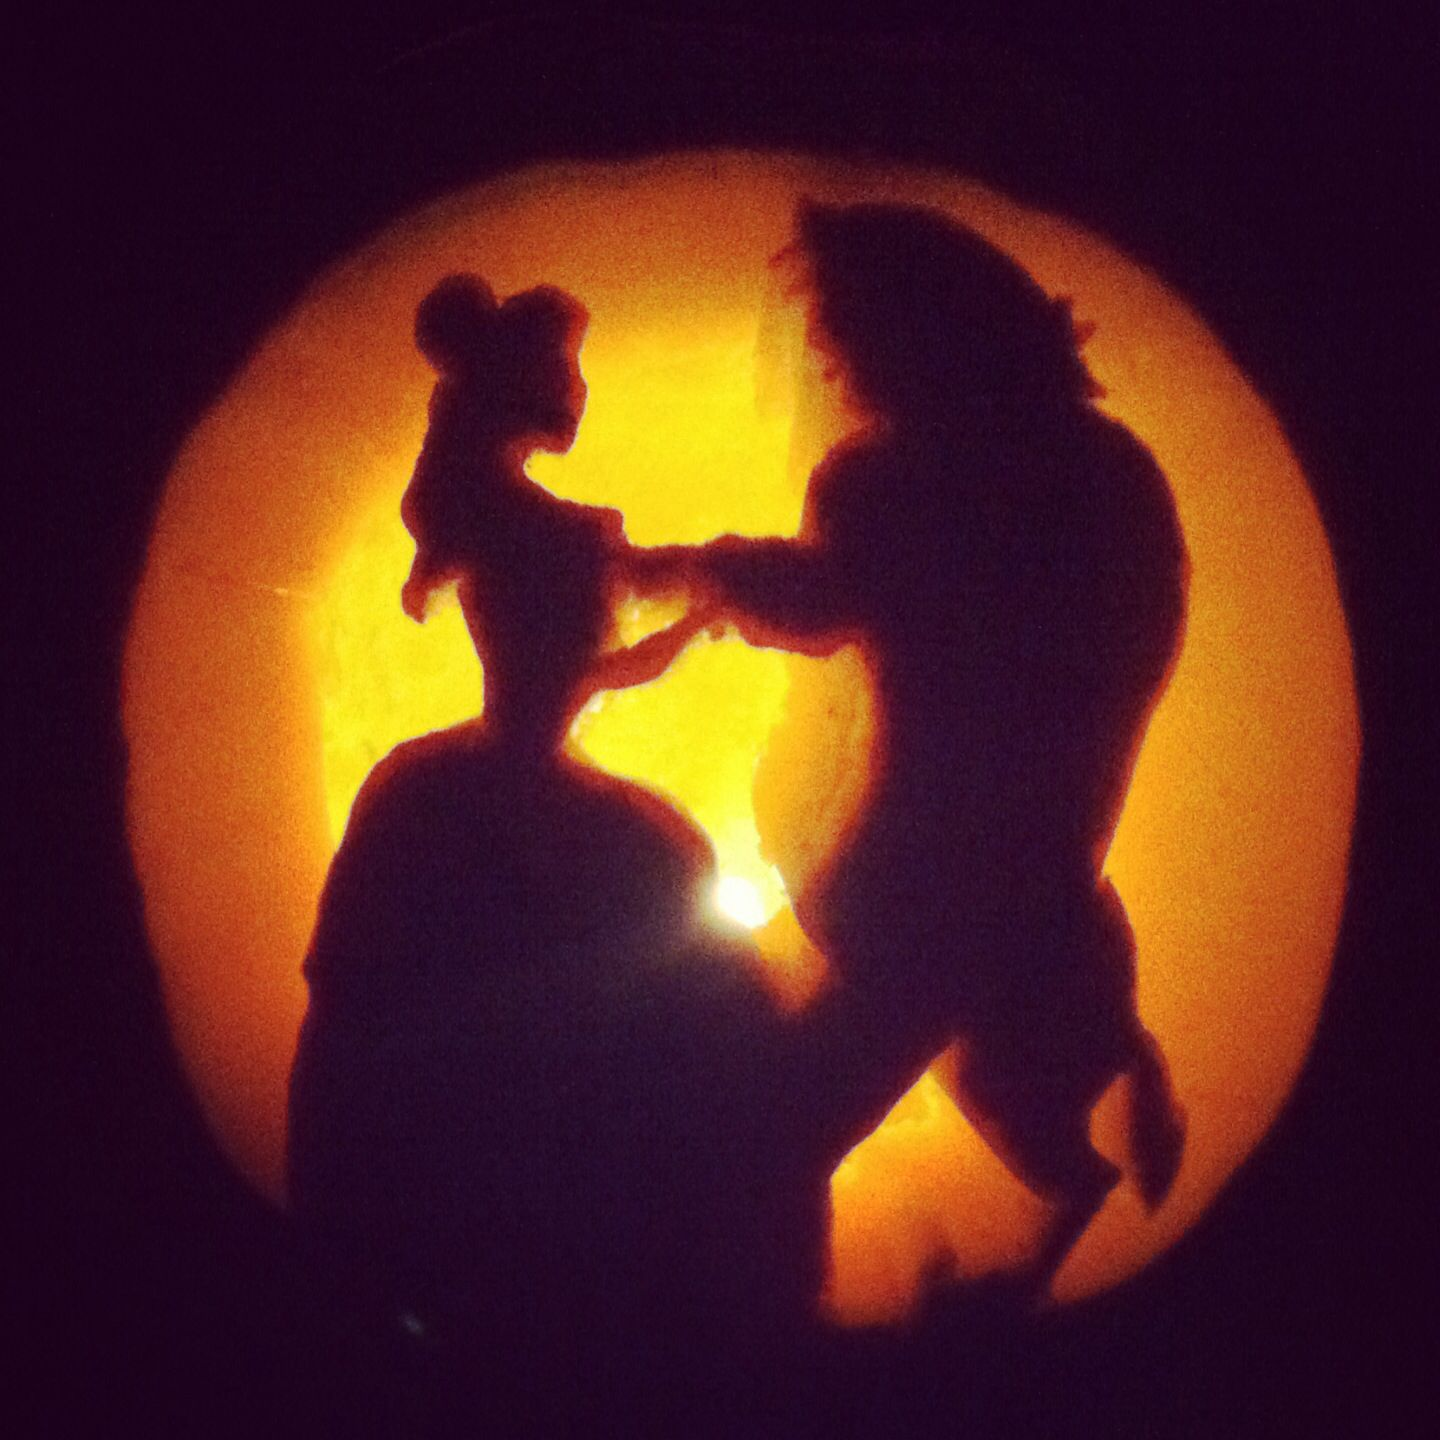 Princess belle Beauty and the beast pumpkin carving silhouette ...